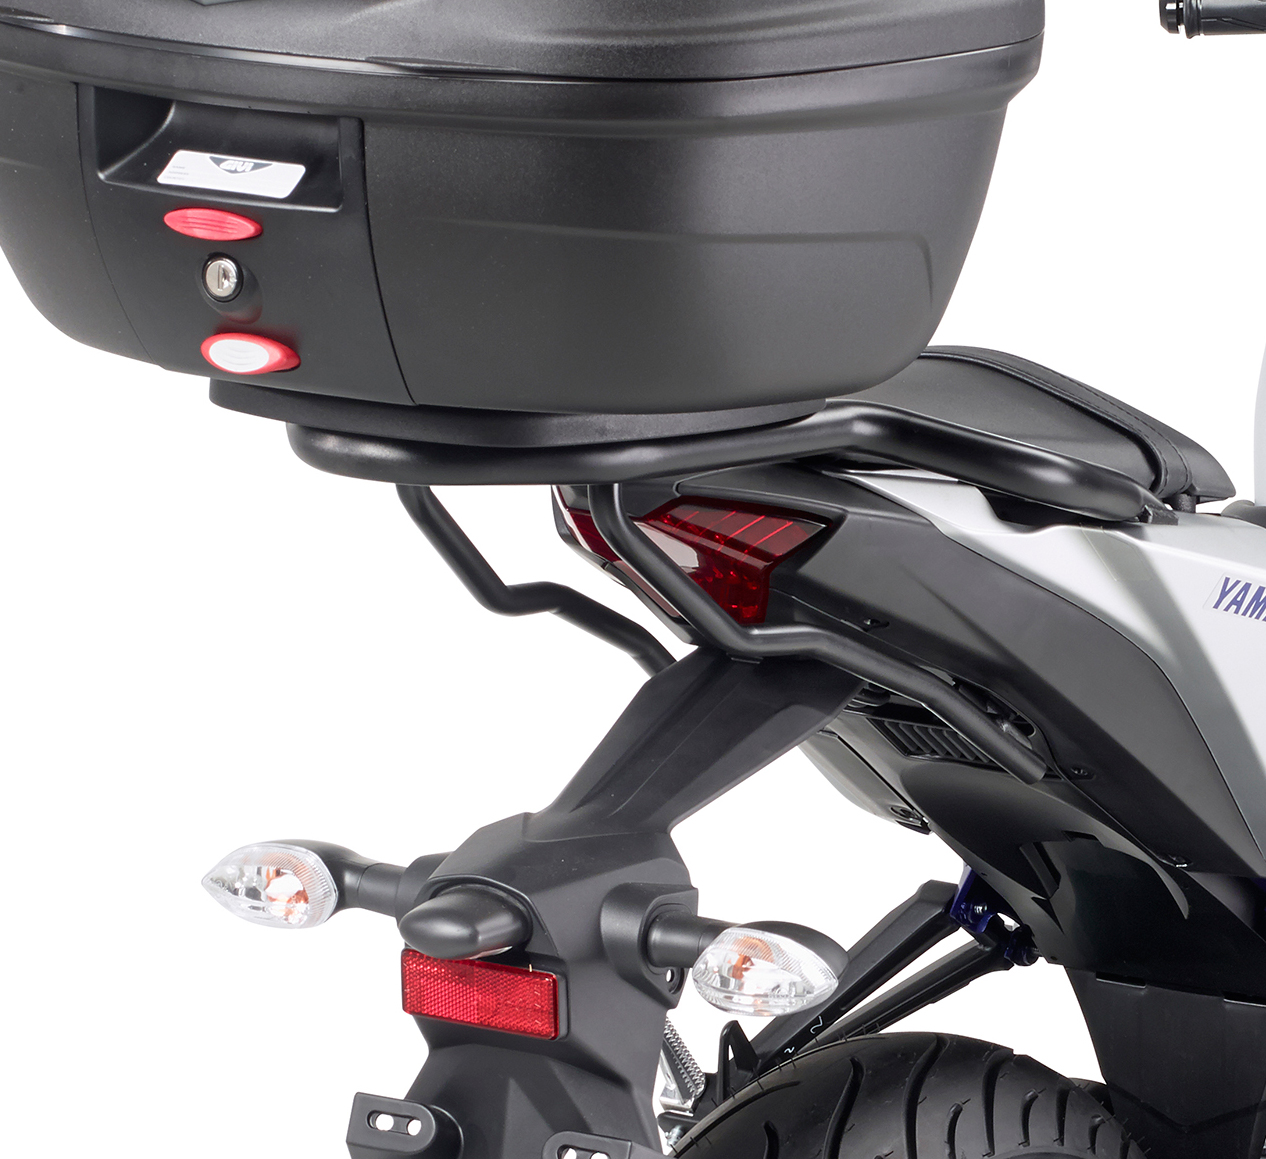 5822b798d602b Givi Top Case Rack SR2127 for Yamaha MT-03 specific for Monolock top case